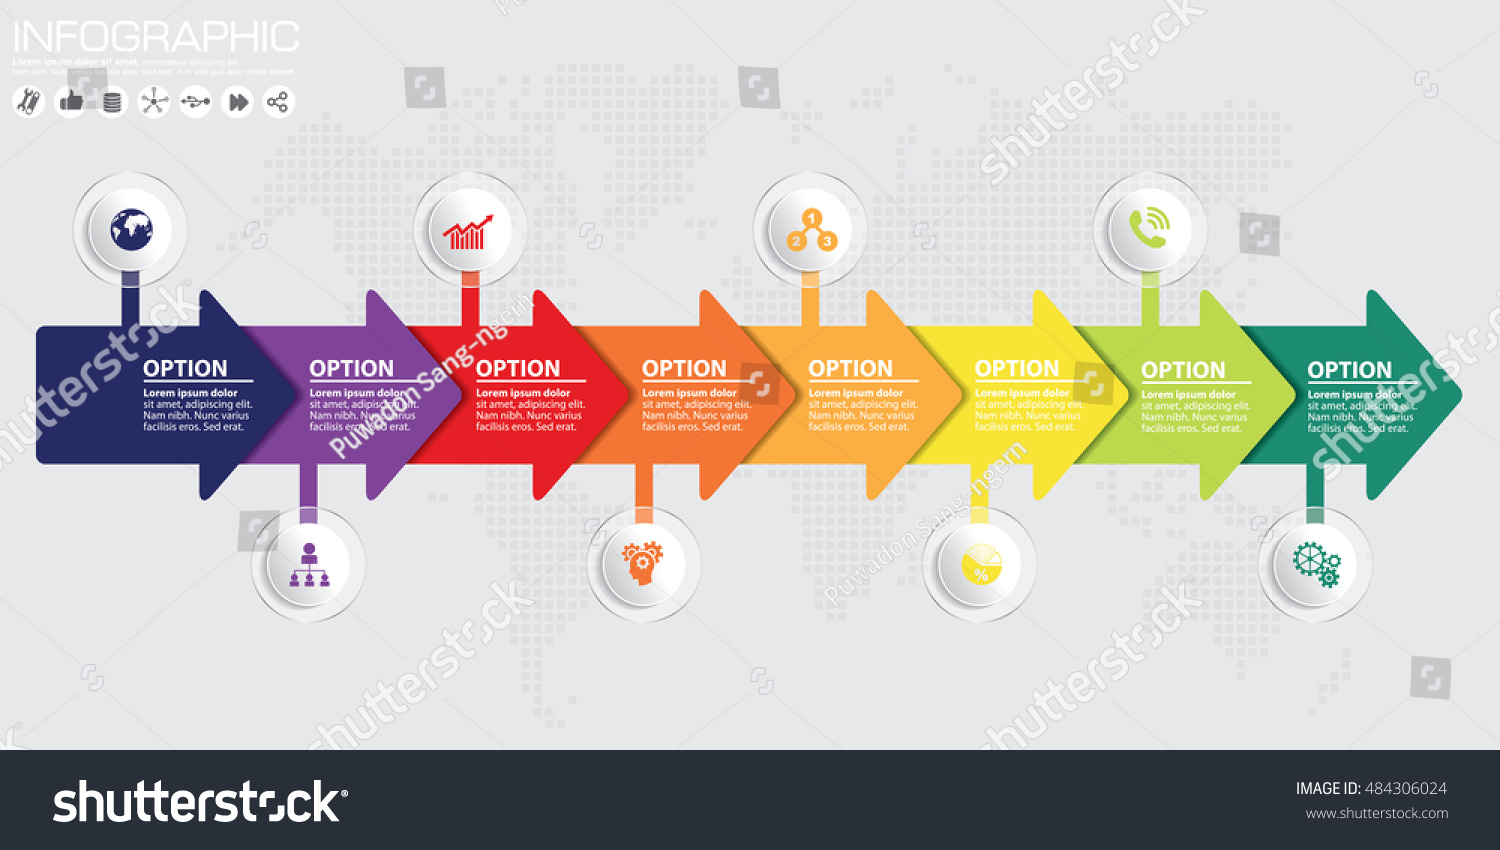 Timeline arrow vector infographic world map stock vector 484306024 timeline and arrow vector infographic world map background gumiabroncs Gallery